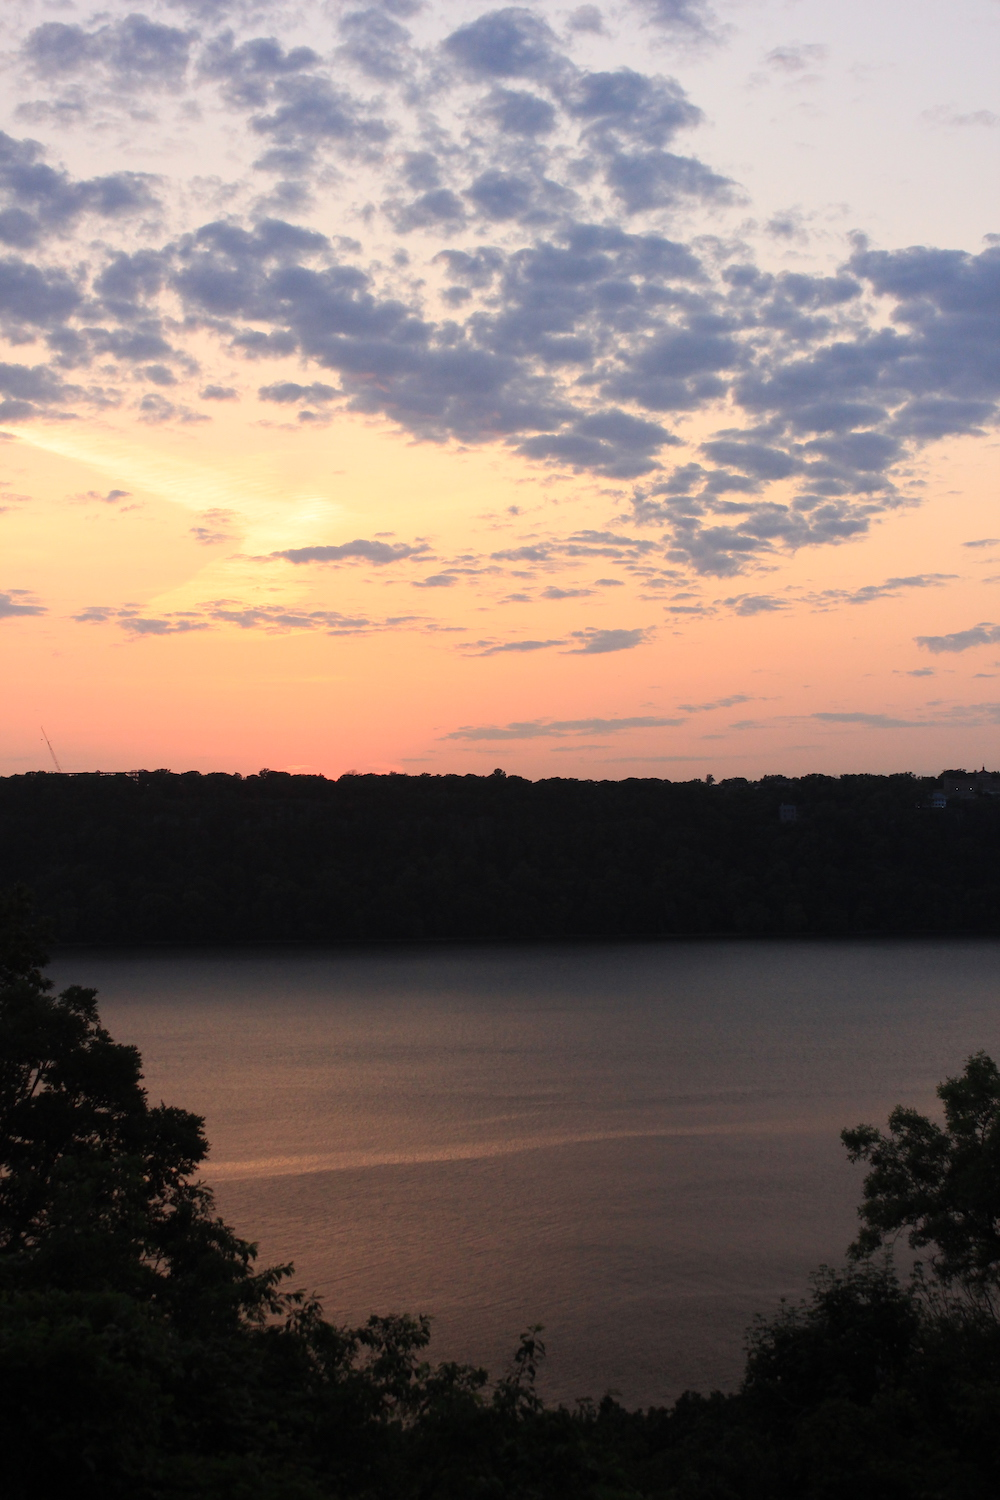 Sunset from Linden Terrace in Fort Tryon Park, NYC | Photo credit: Rose Spaziani